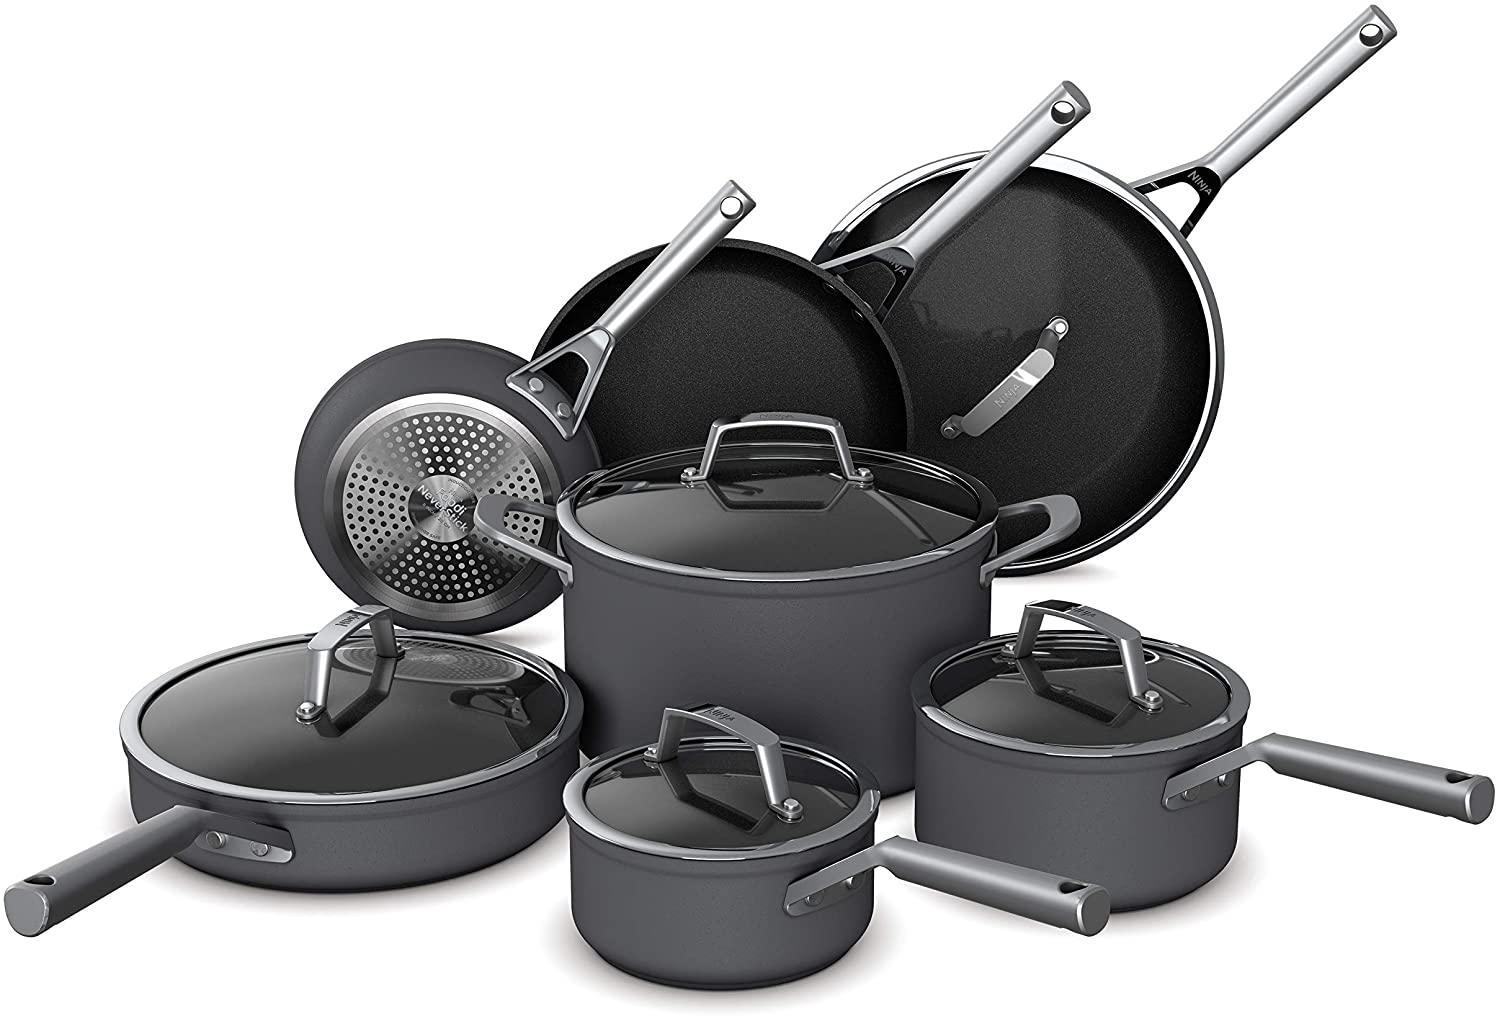 Ninja C39800 Foodi NeverStick Premium Hard-Anodized 12-Piece Cookware Set, nonstick, durable, oven safe to 500°F, slate grey